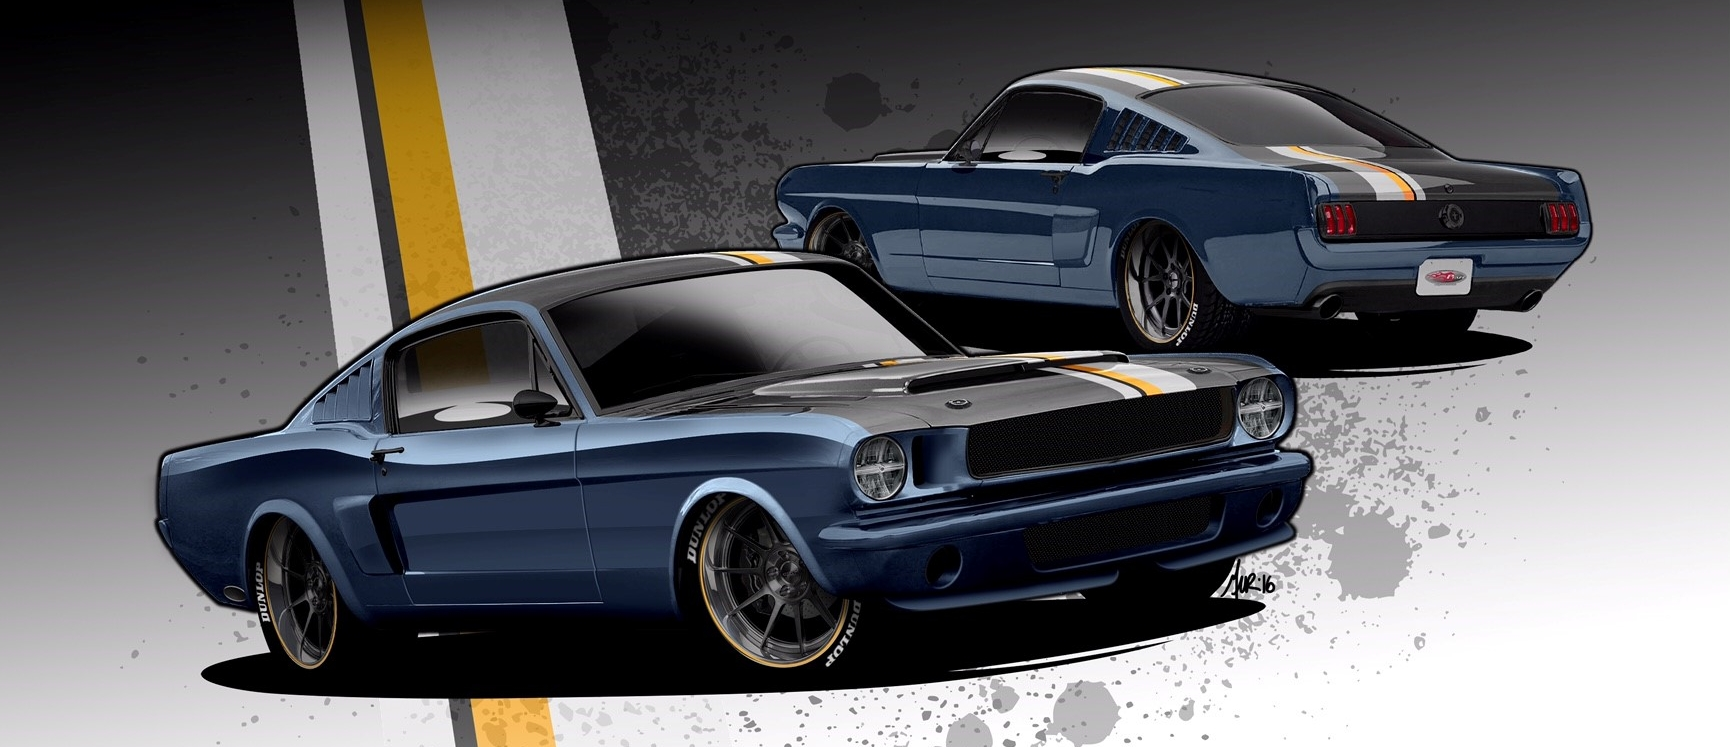 **IN PROGRESS** -- 1965 Mustang Fastback Concept